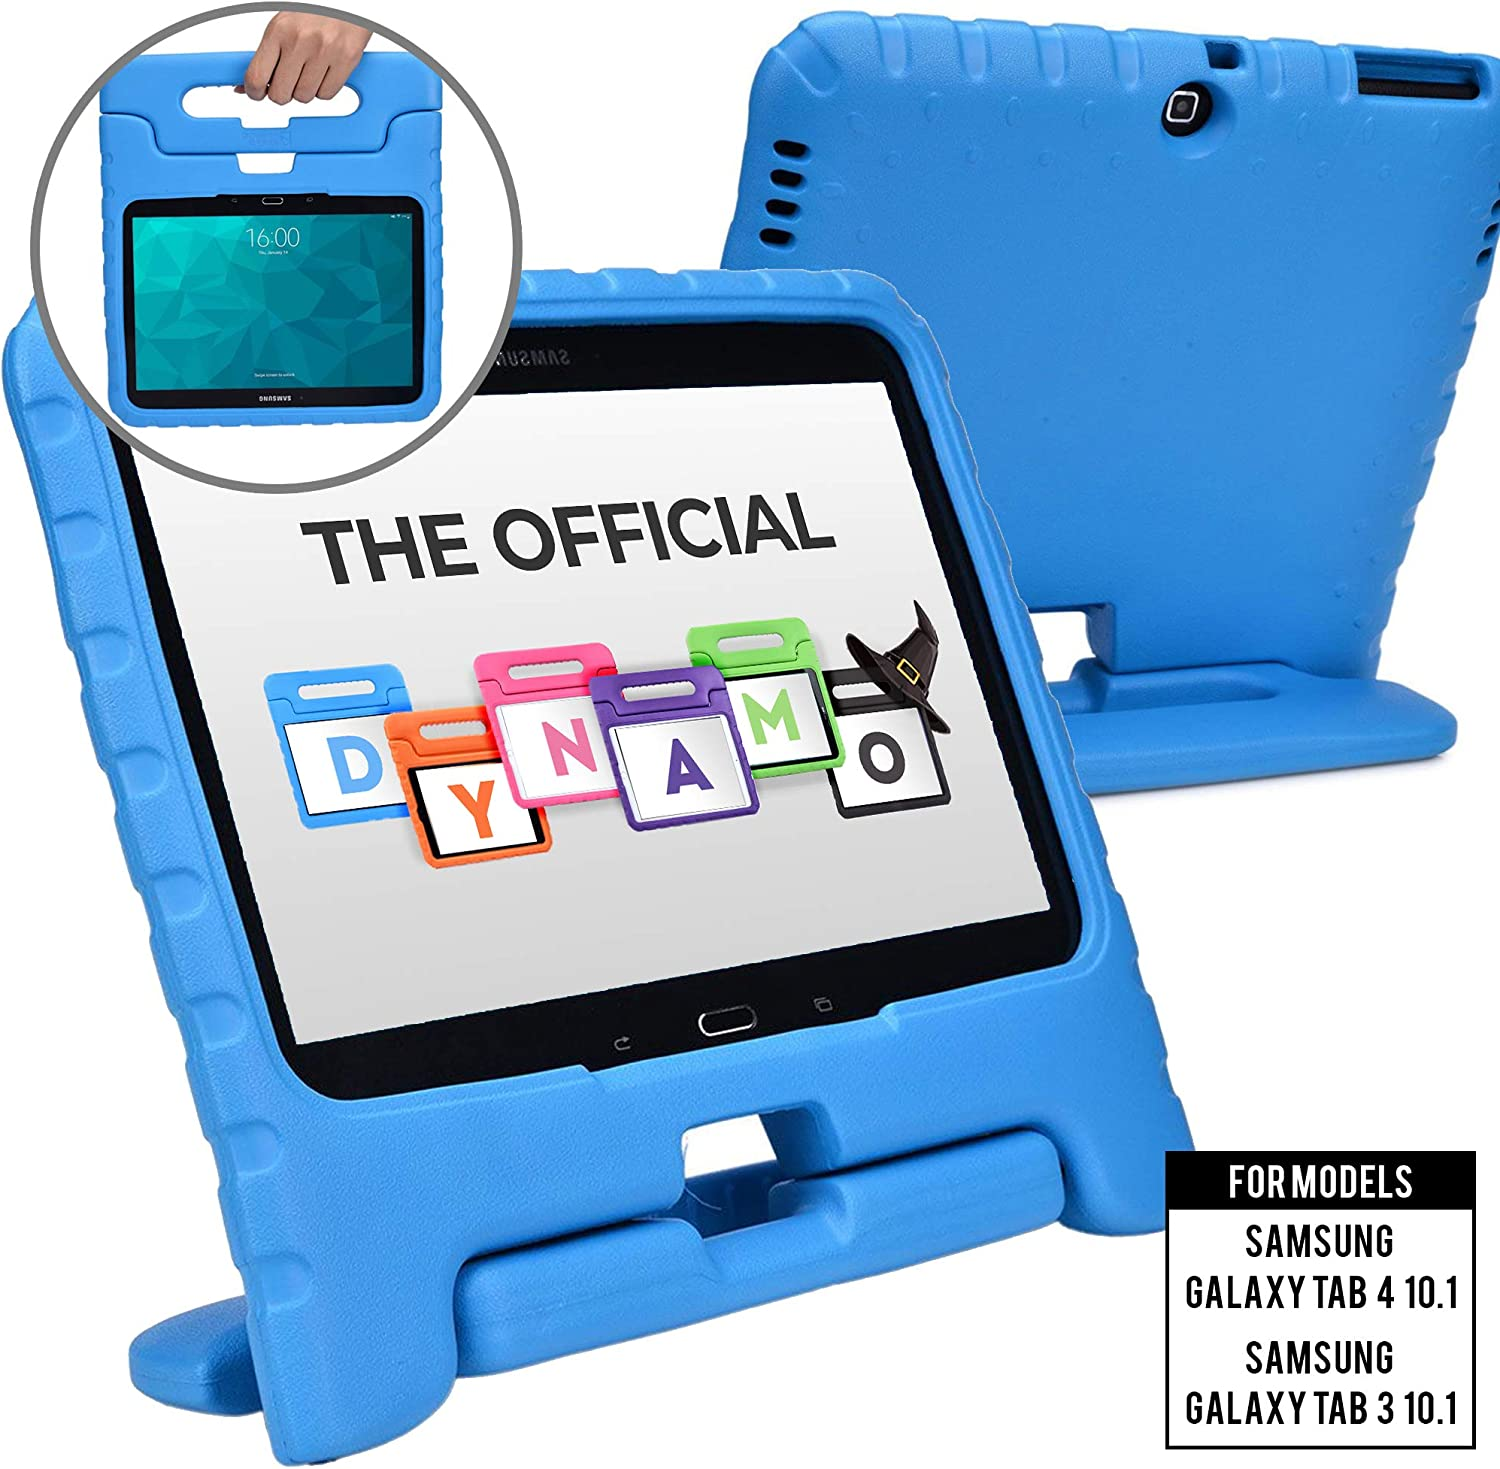 Cooper Dynamo [Rugged Kids Case] Protective Case for Samsung Tab 4 10.1, Tab 3 10.1 | Child Proof Cover with Stand, Handle | SM-T530 T531 T535 (Blue)